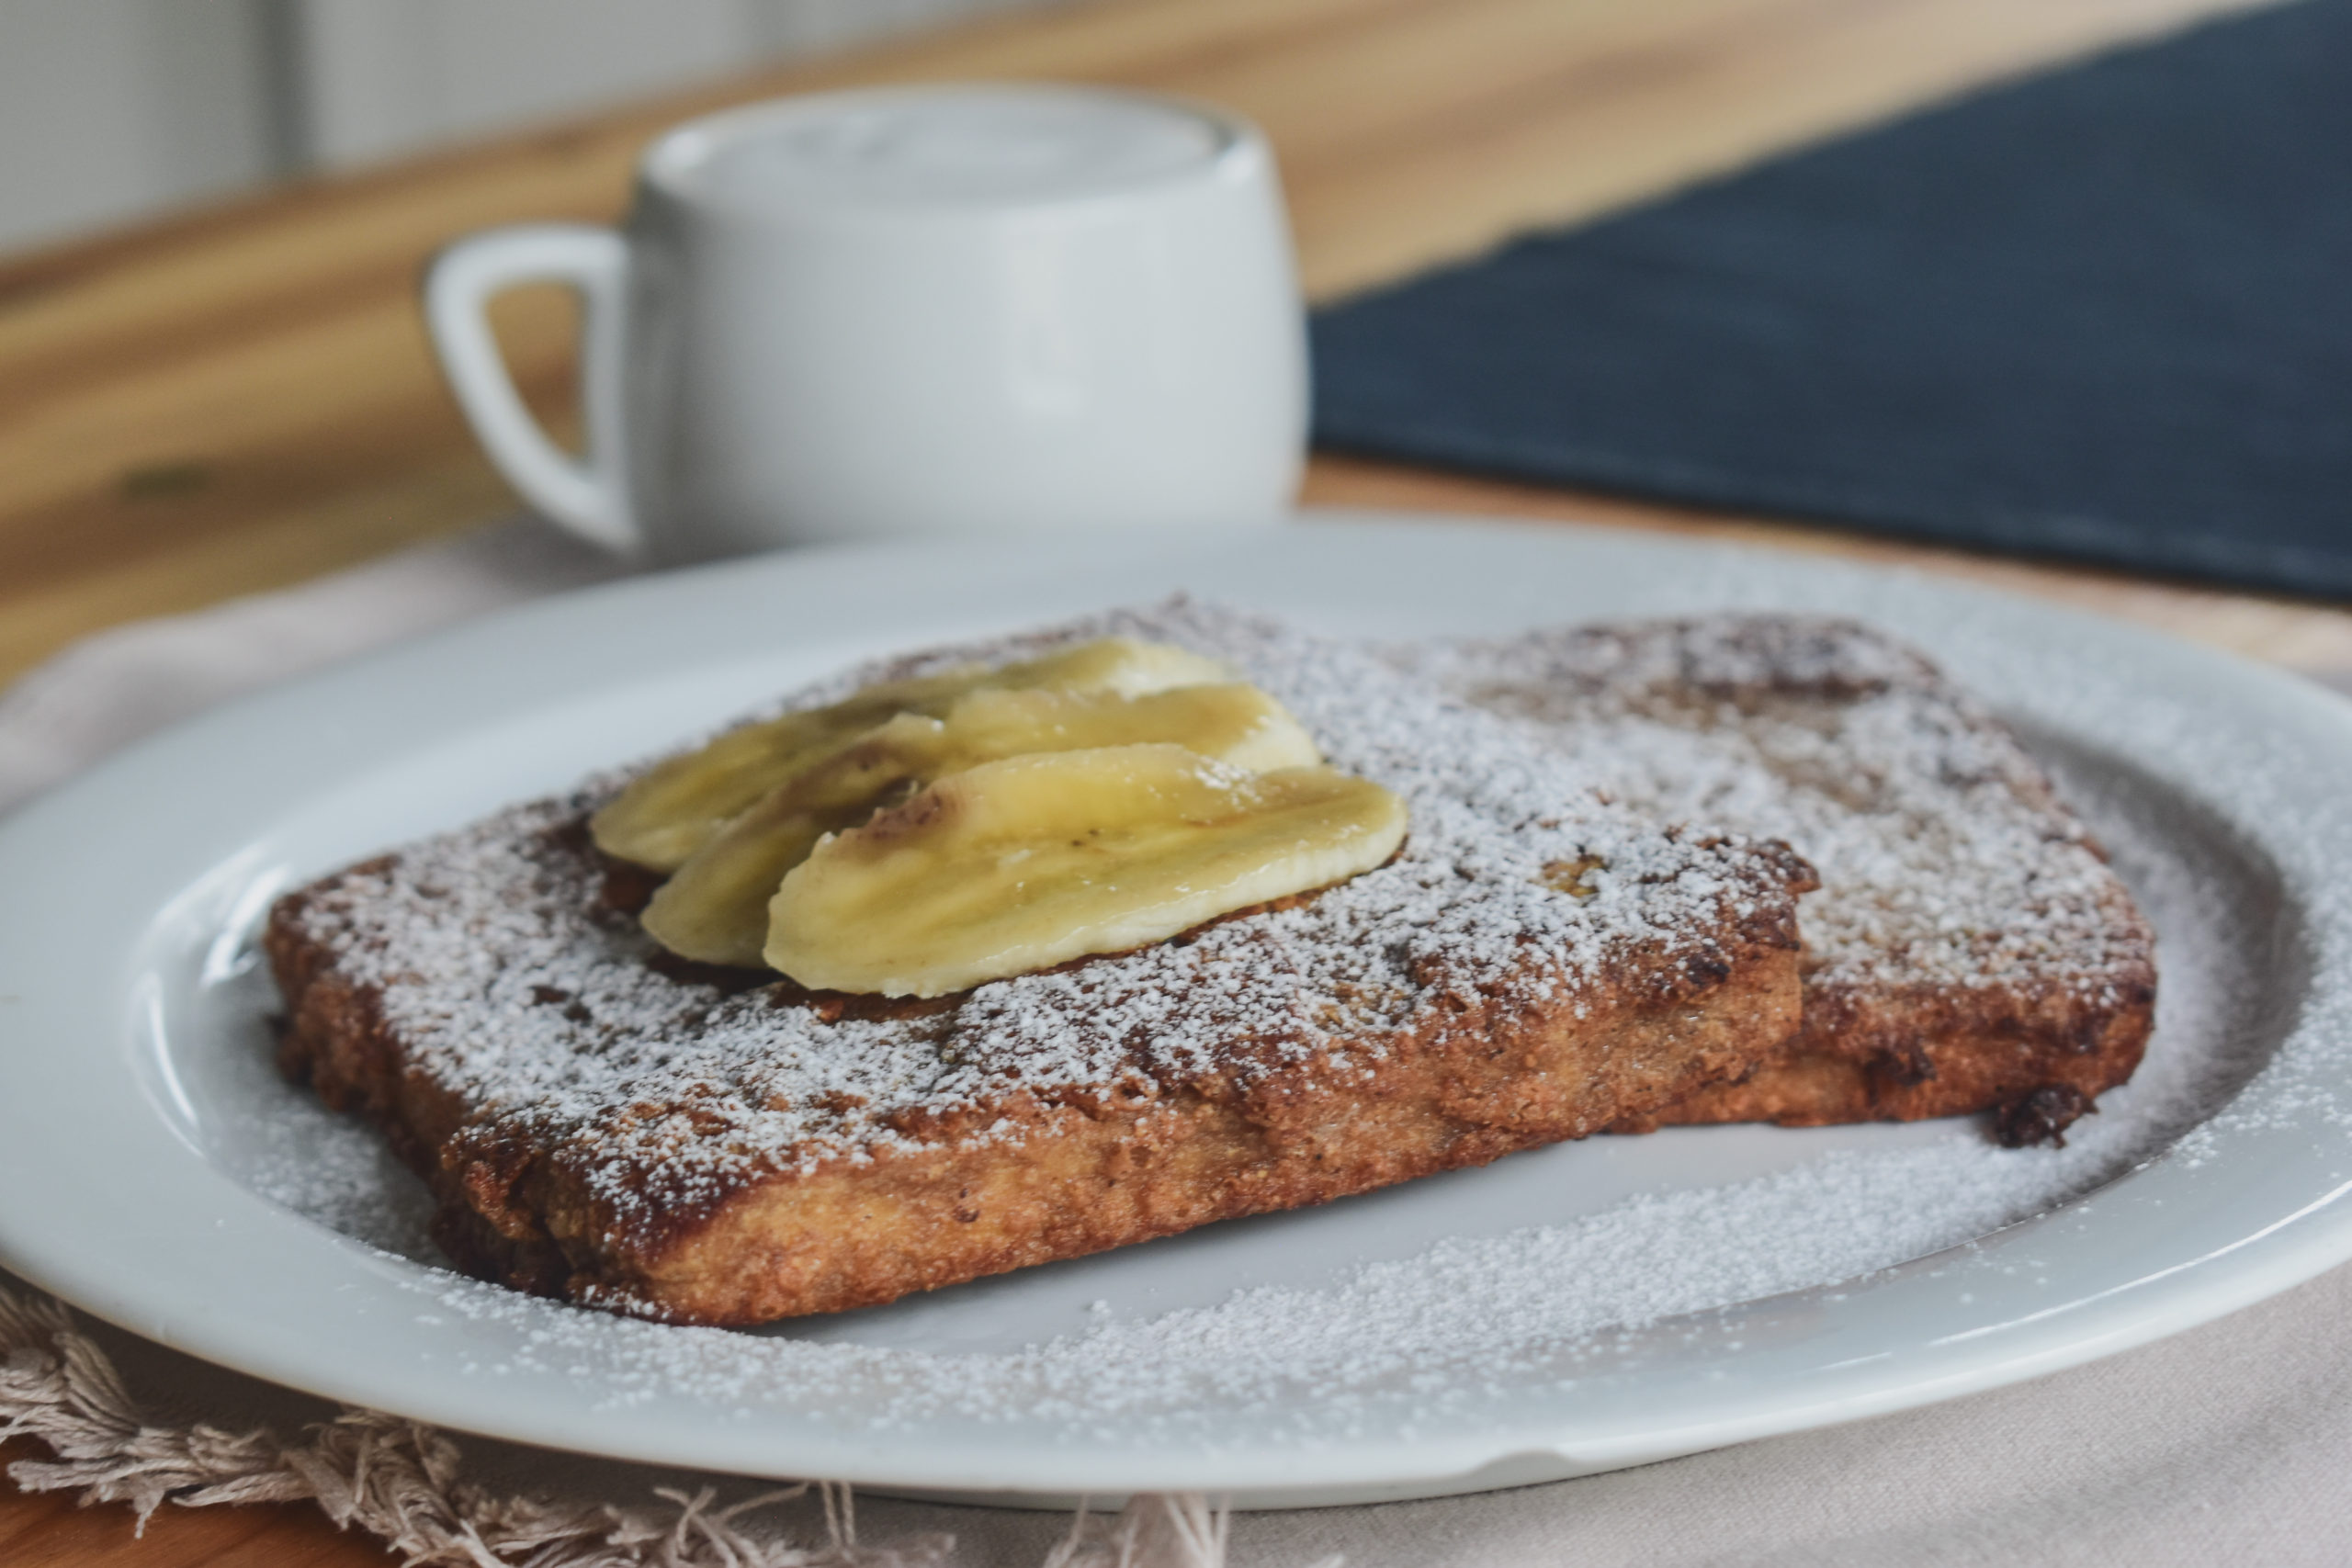 Peanut butter and coffee french toast